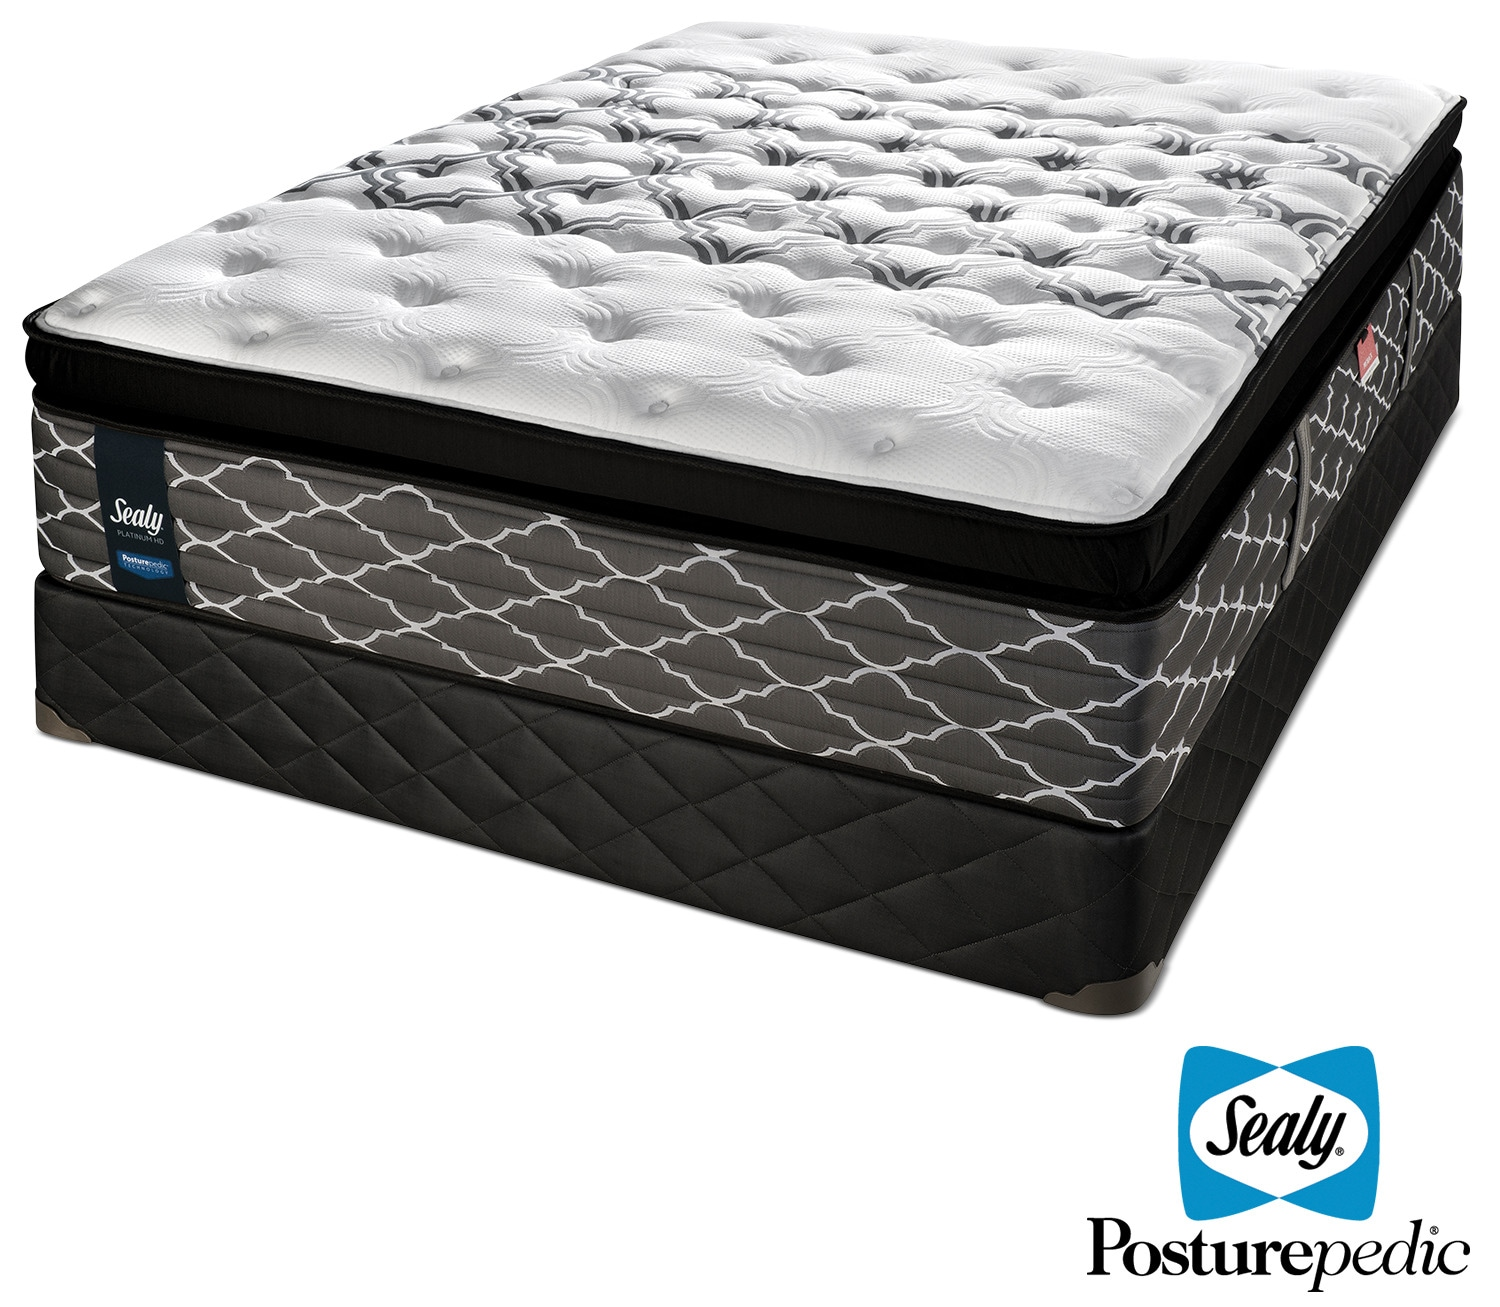 Mattresses and Bedding - Sealy Endless Night Hybrid Cushion Firm Queen Mattress and Boxspring Set